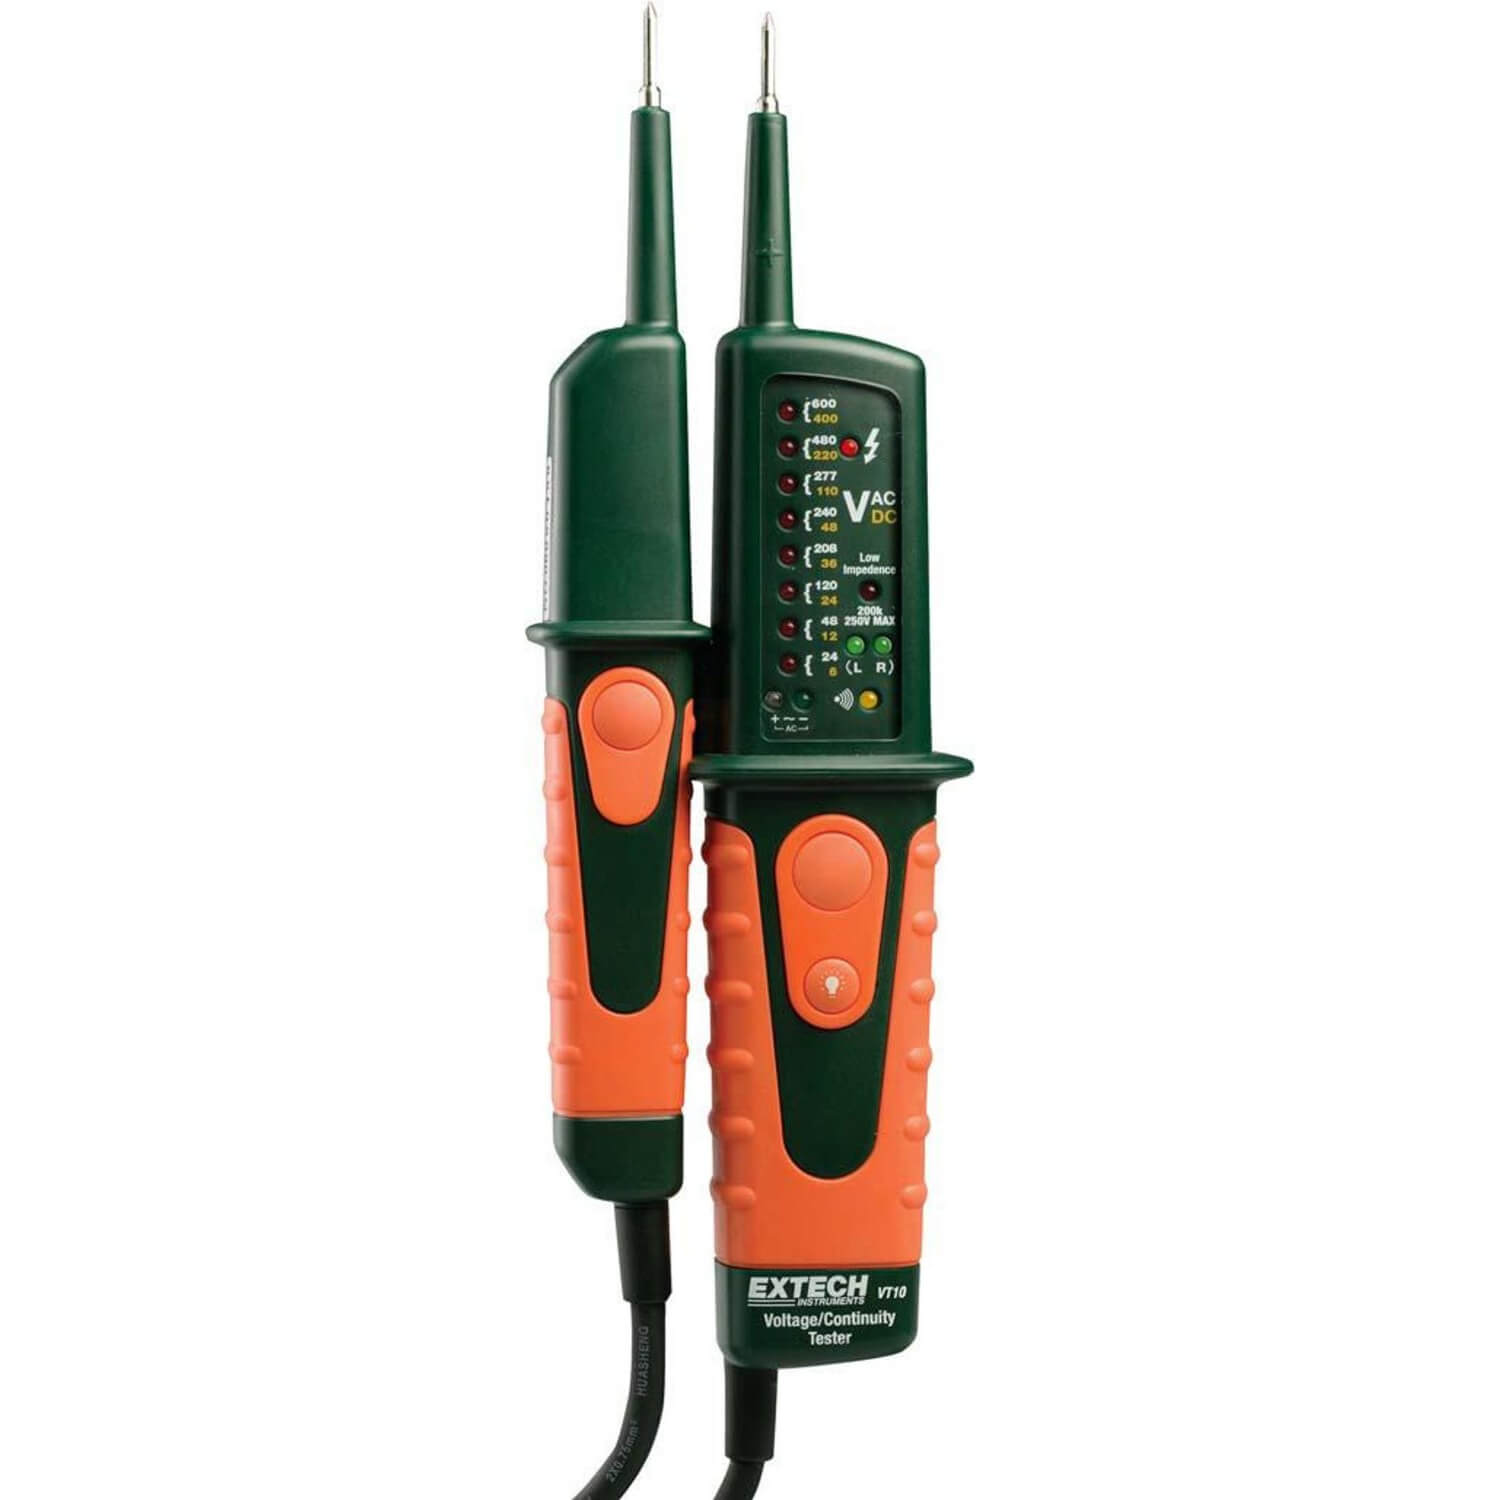 Extech VT10 Continuity and Voltage Tester